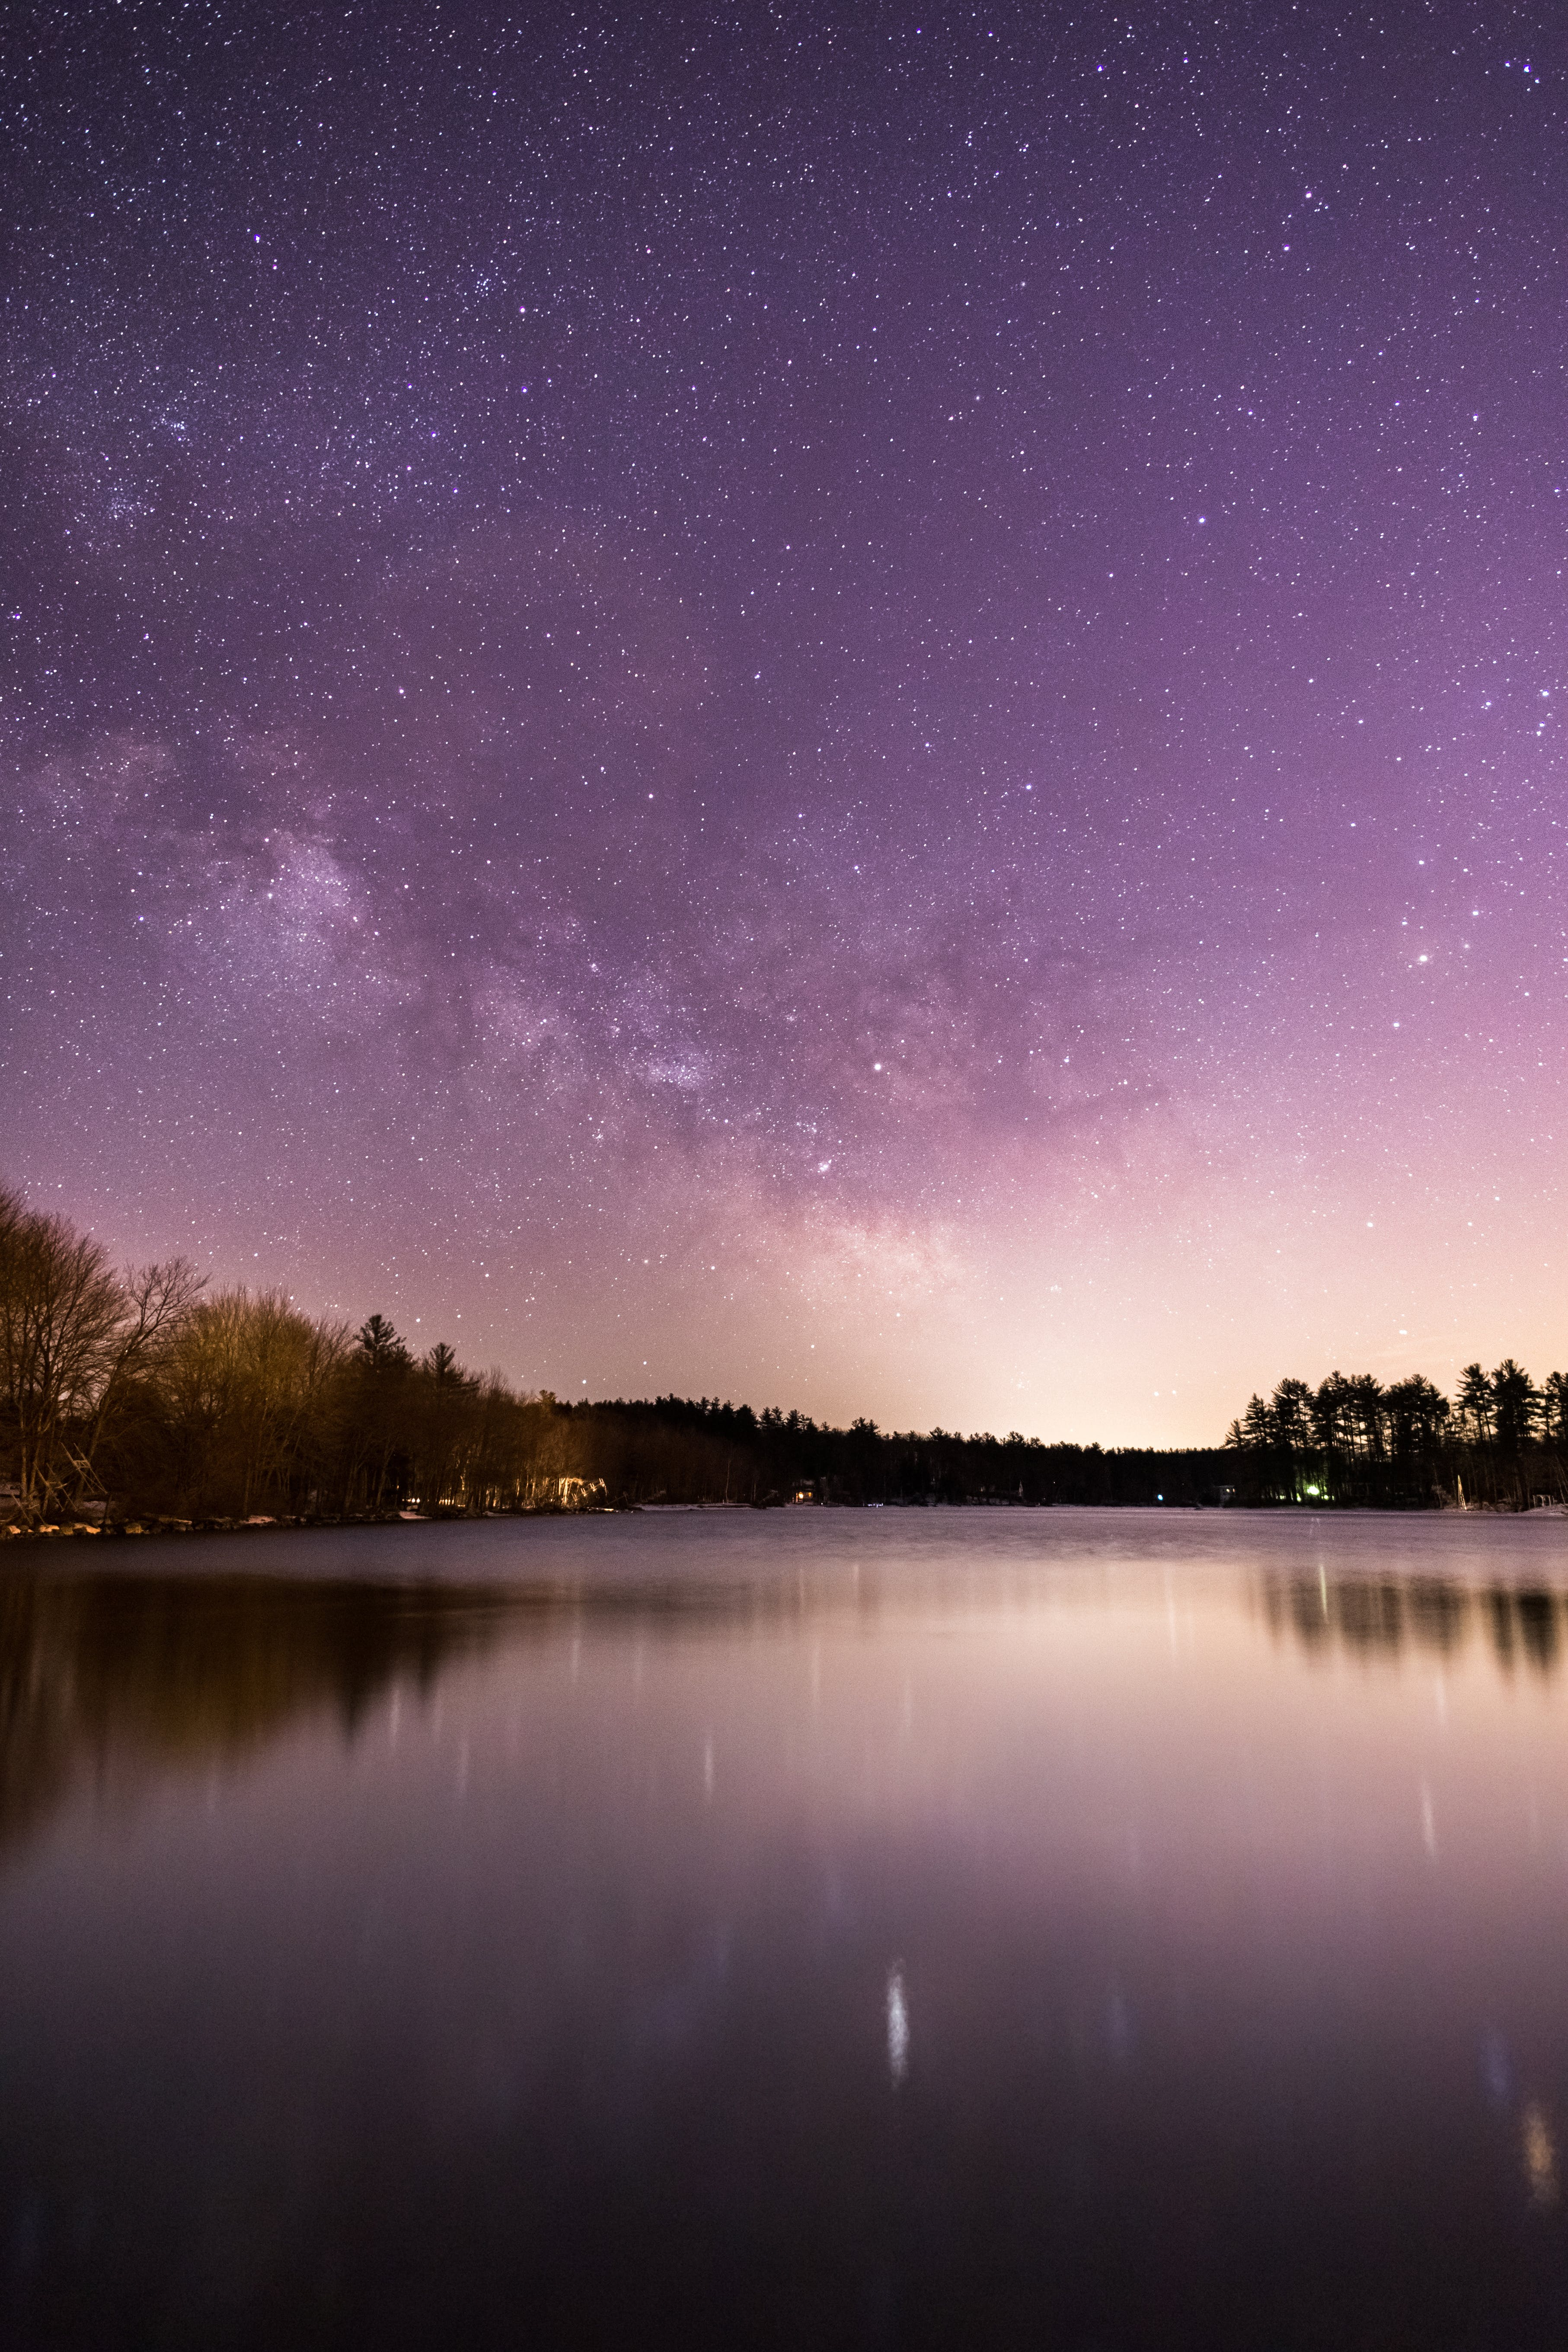 Body of Water during Night